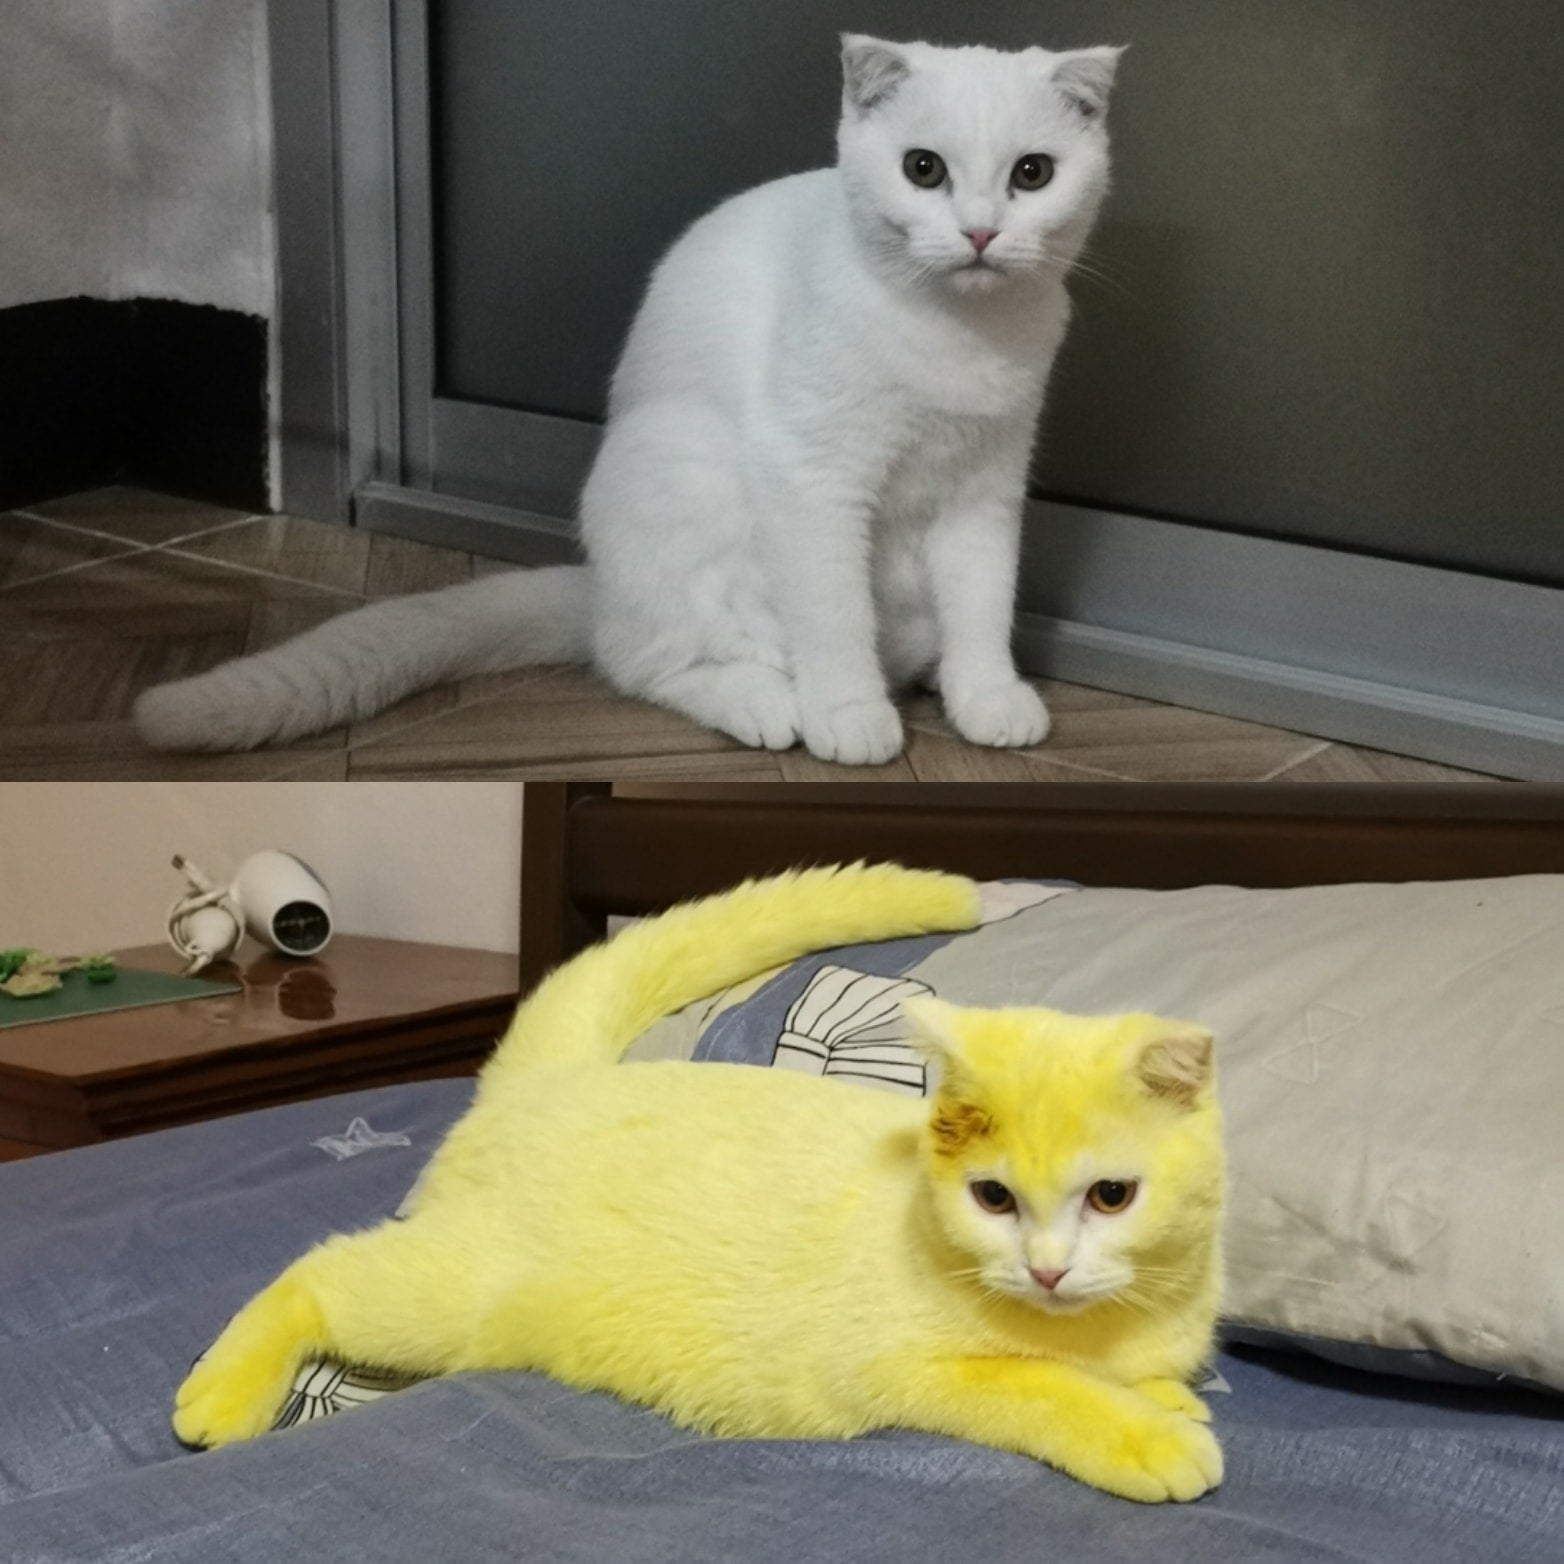 Woman Accidentally Turned Her Cat Yellow With Turmeric Powder So Naturally, She Turned Her Cat Into Pikachu